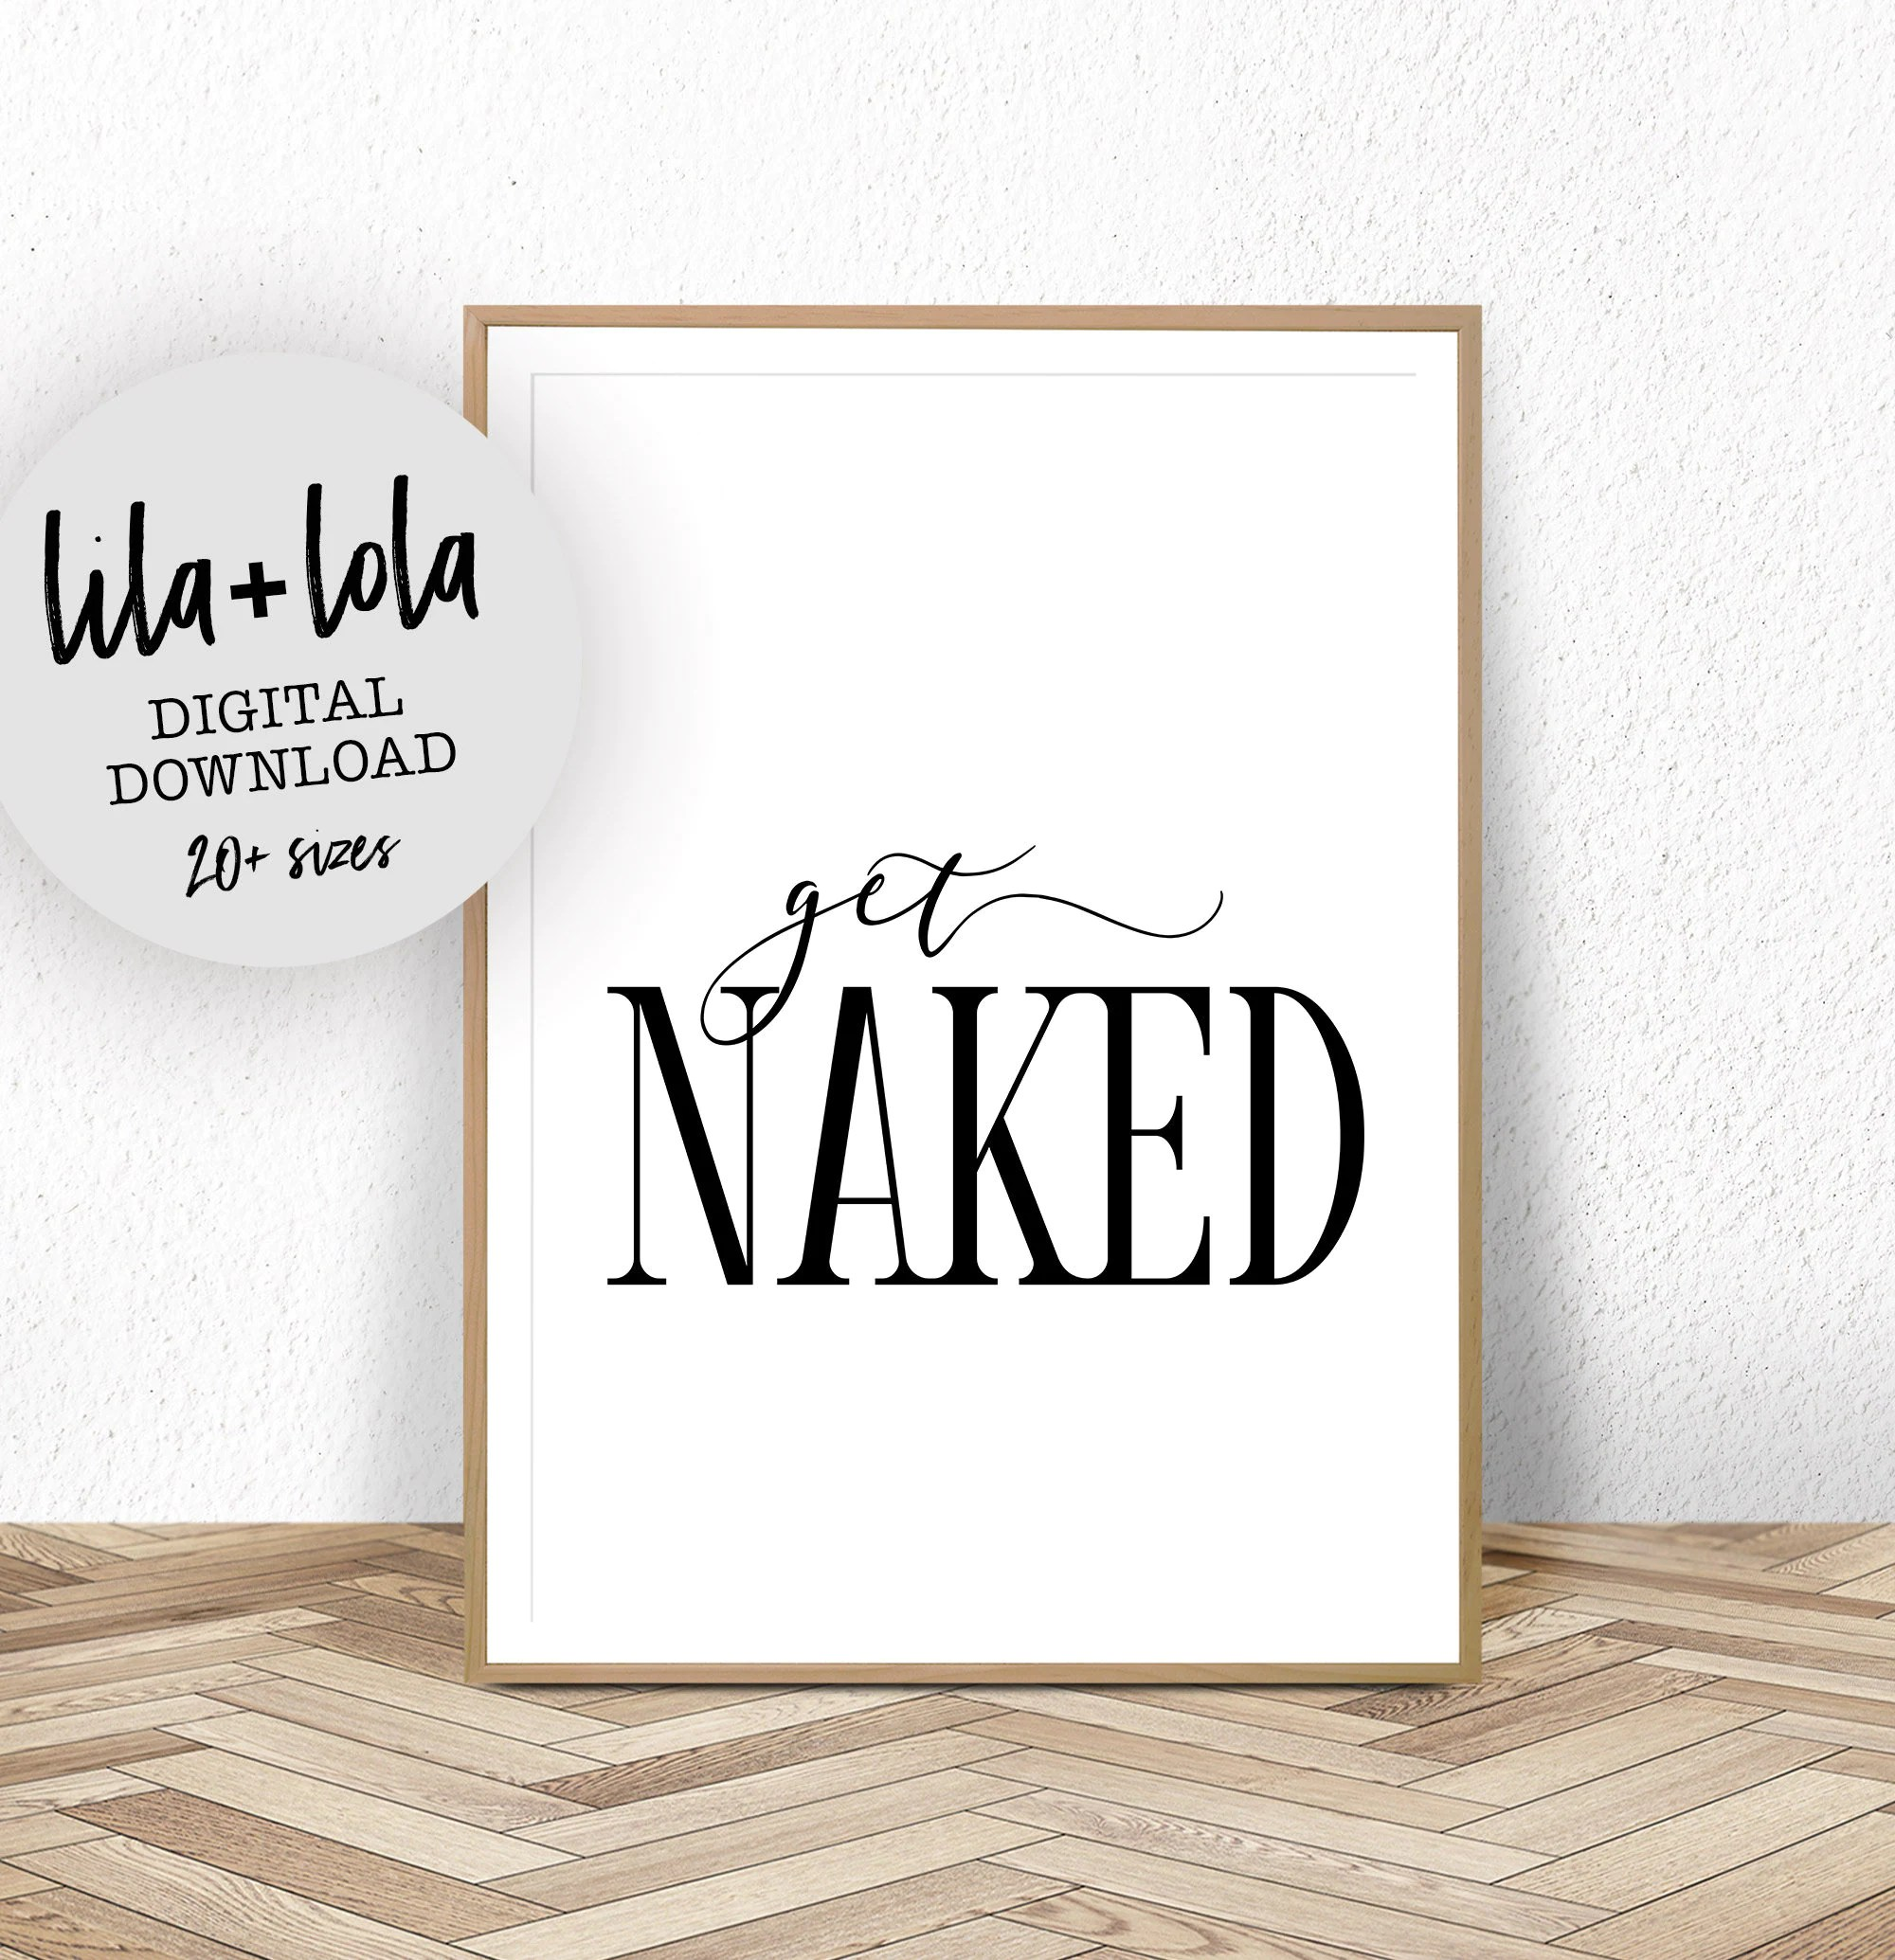 Bathroom Wall Art Decor Bathroom Wall Decor Funny Bathroom Signs Bathroom Wall Art